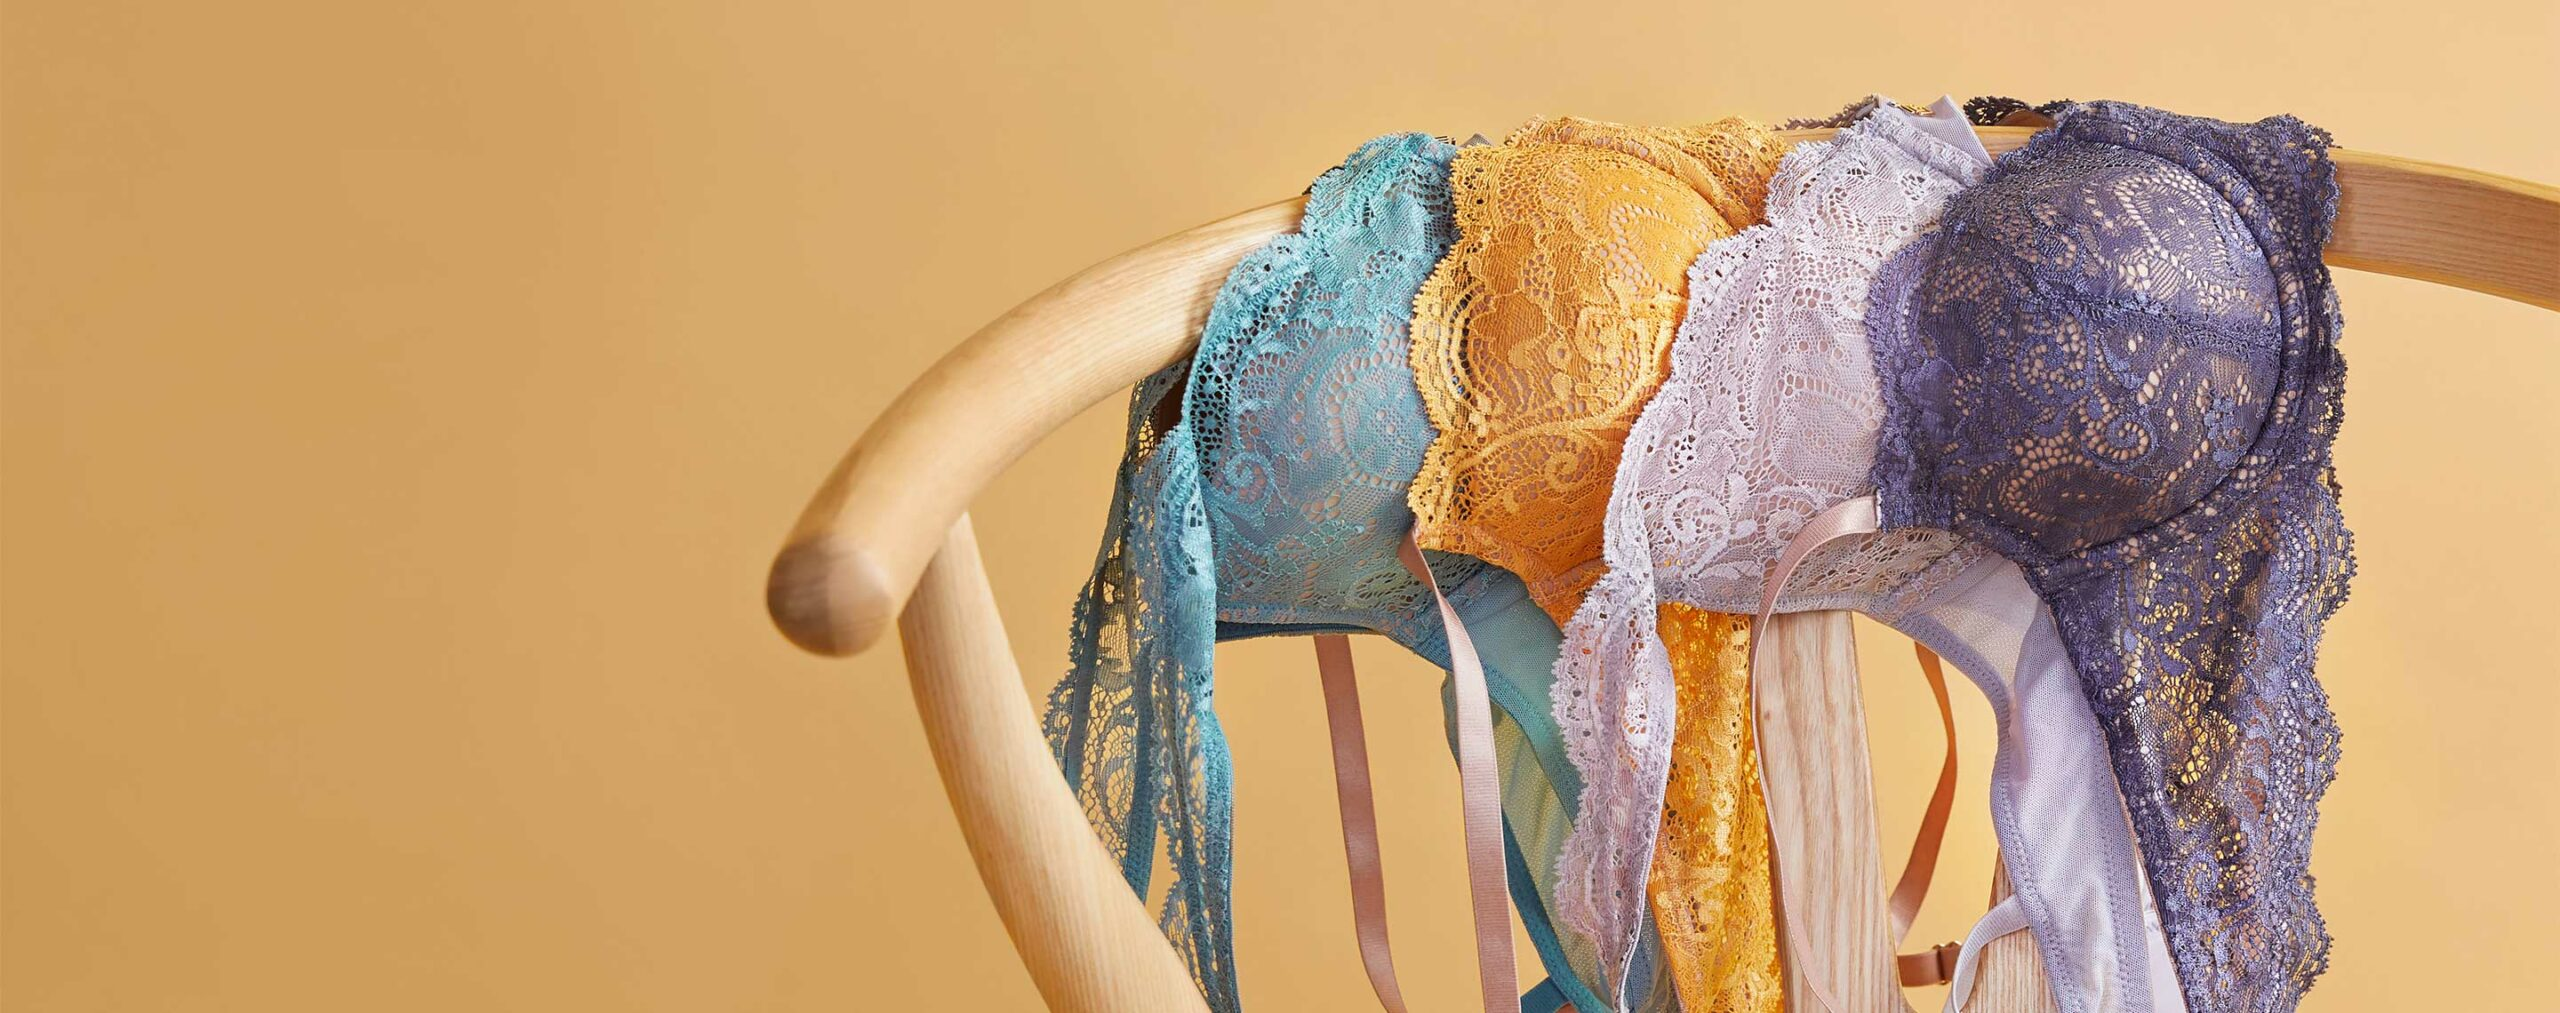 How long do bras last ? All You Need To Know To Make Them Last Longer